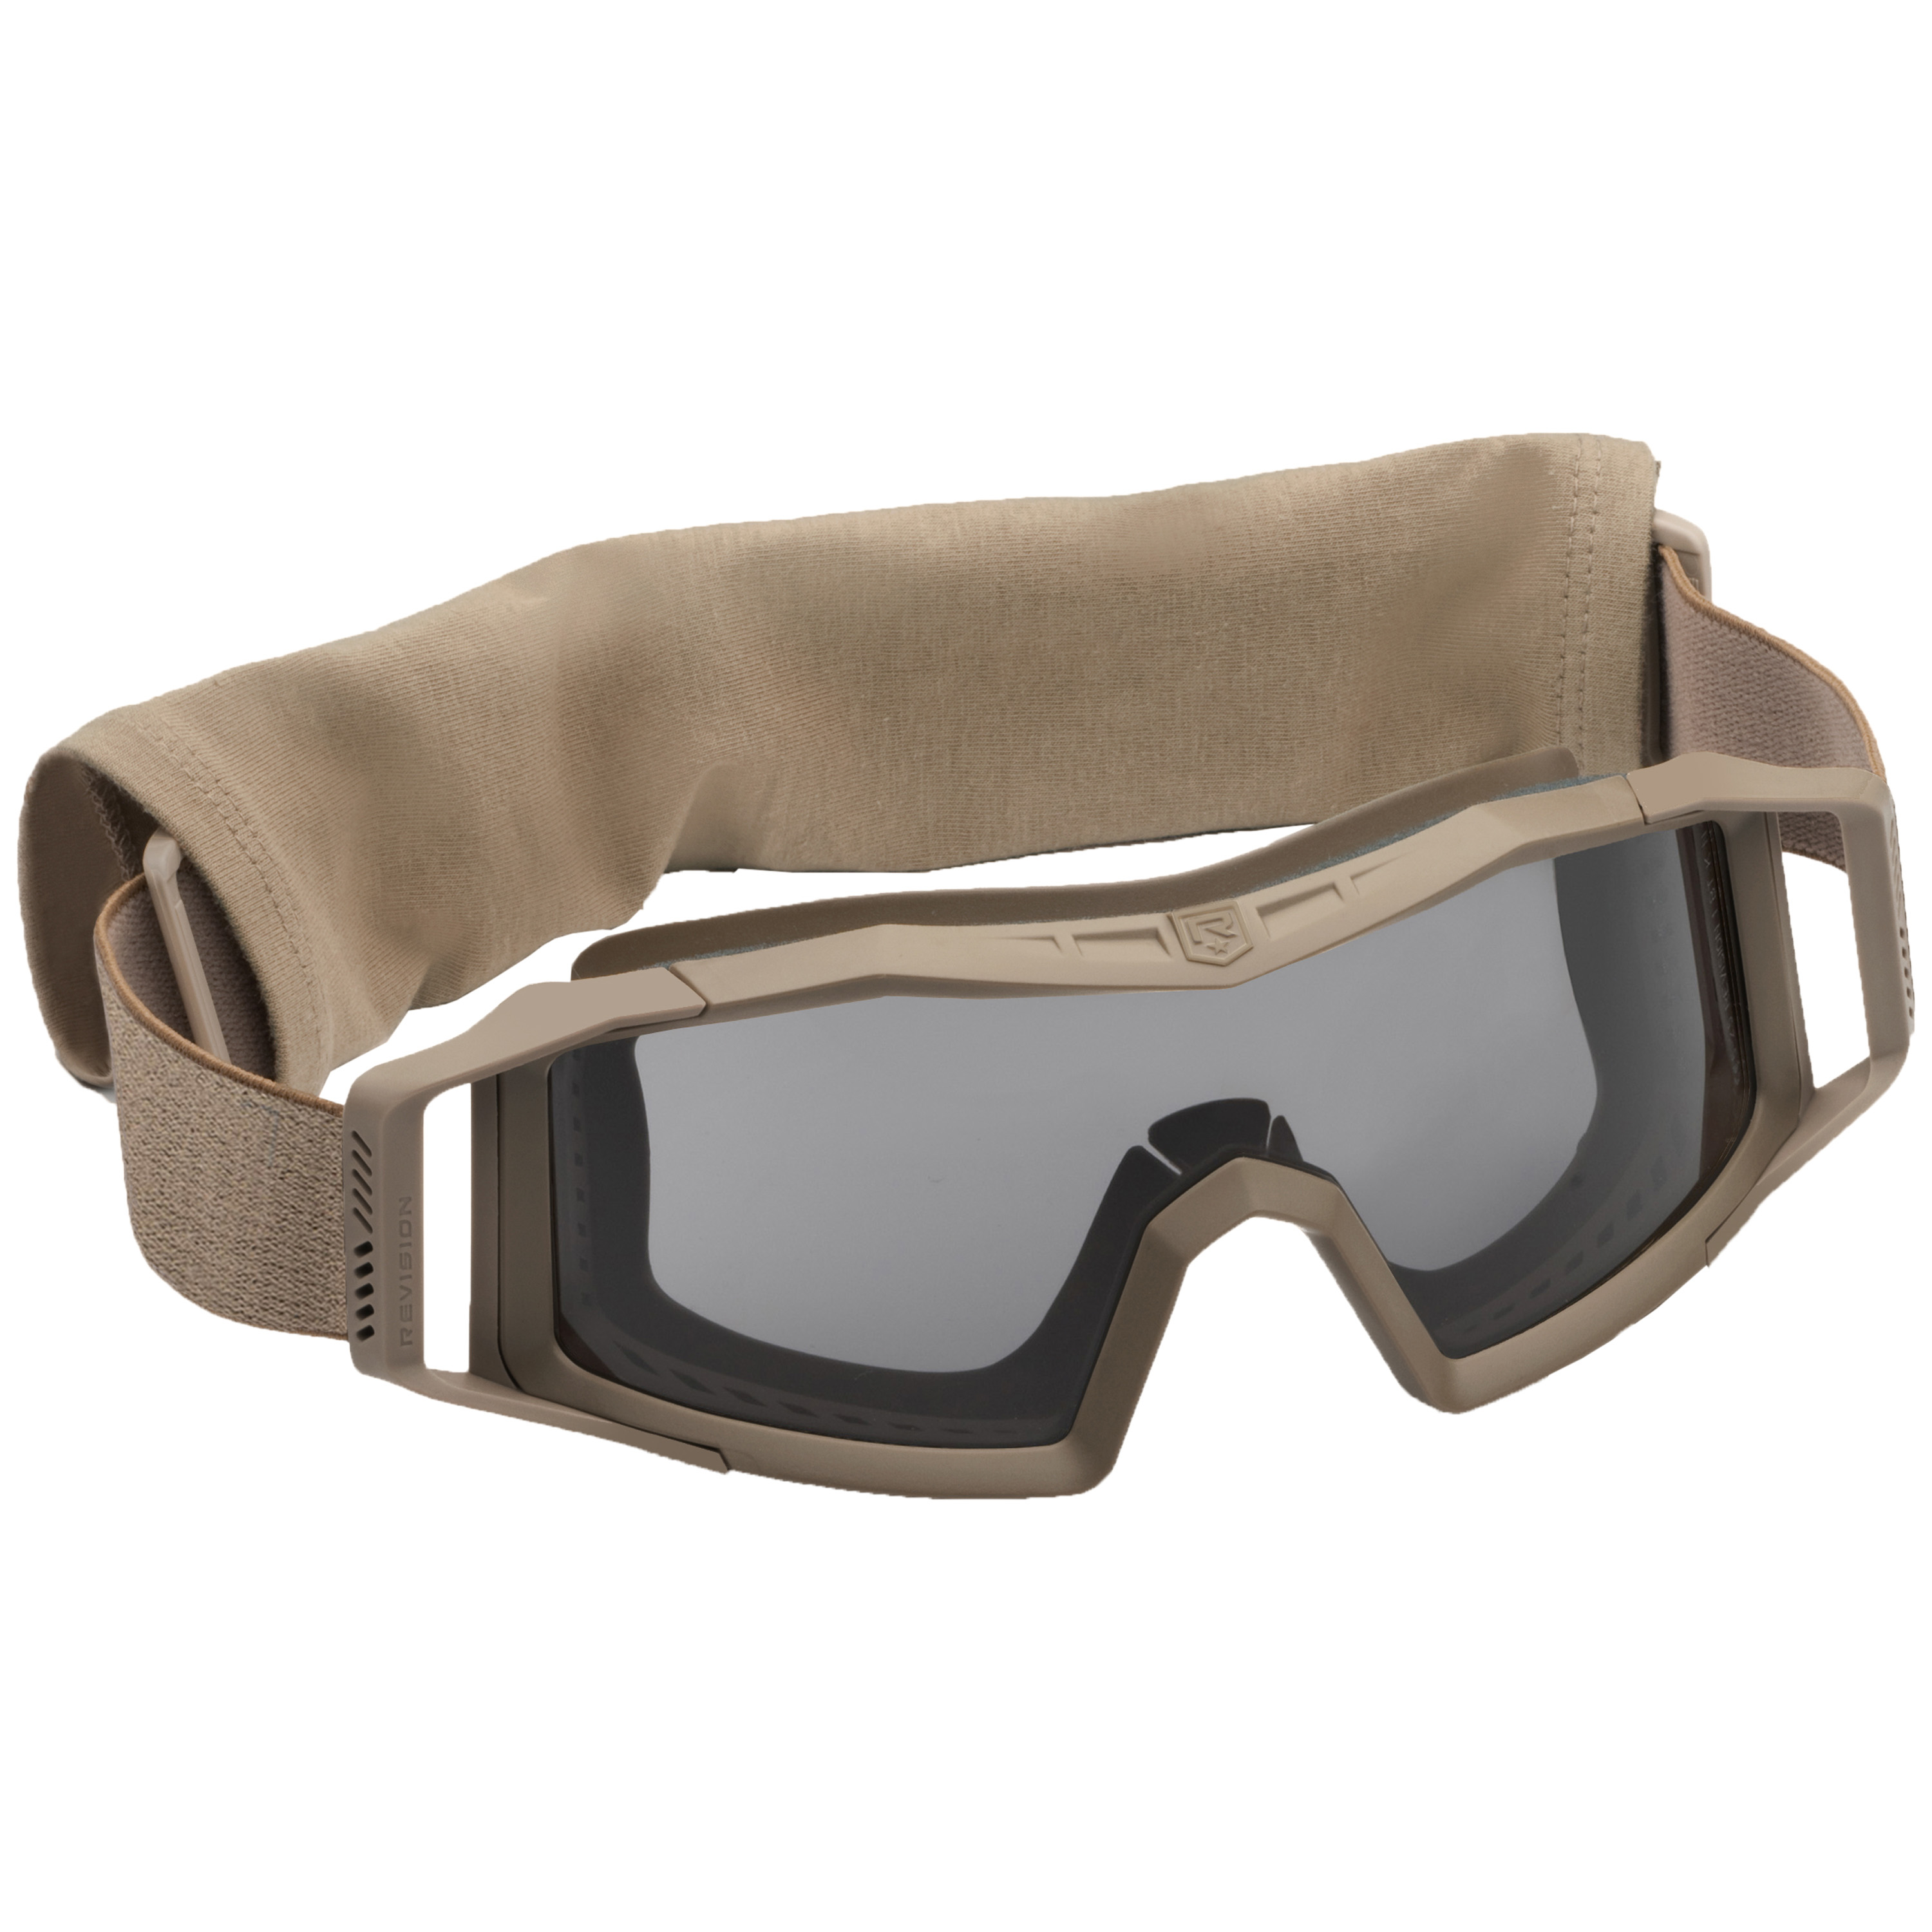 Revision Goggles Wolfspider Basic tan/smoke lens